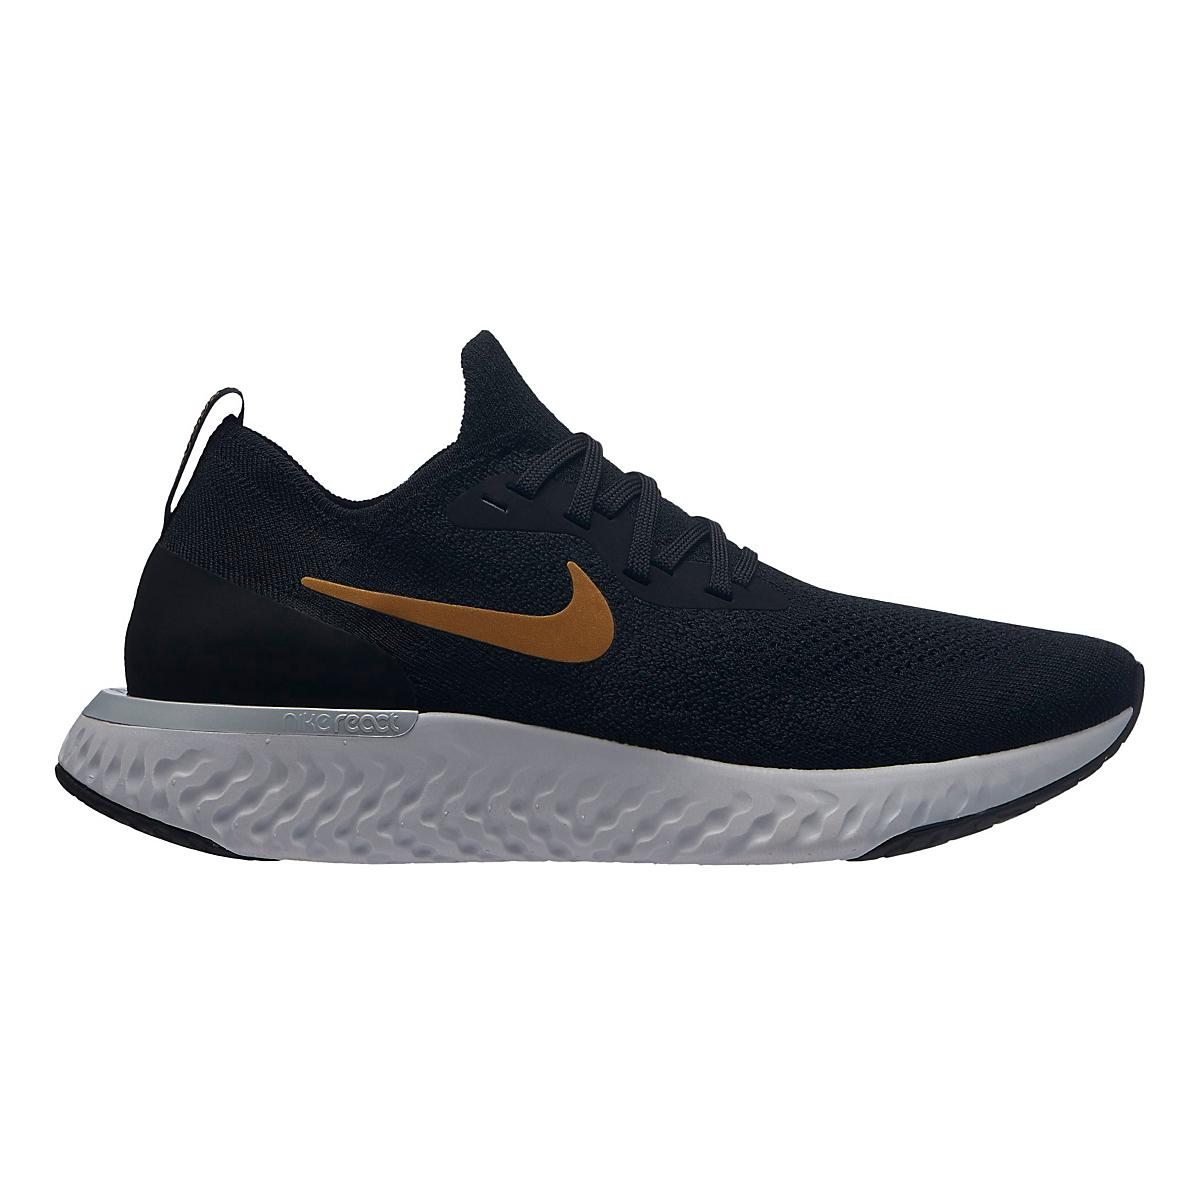 a1ec0ab52898 Womens Nike Epic React Flyknit Metallic Running Shoe at Road Runner Sports